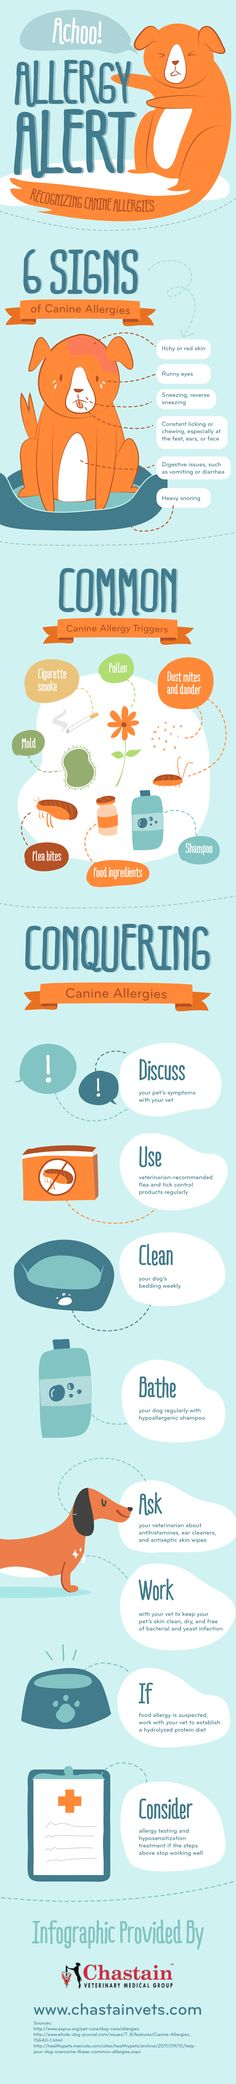 Allergy Alert Recognizing Canine Allergies - [INFOGRAPHIC] #dogs #pets